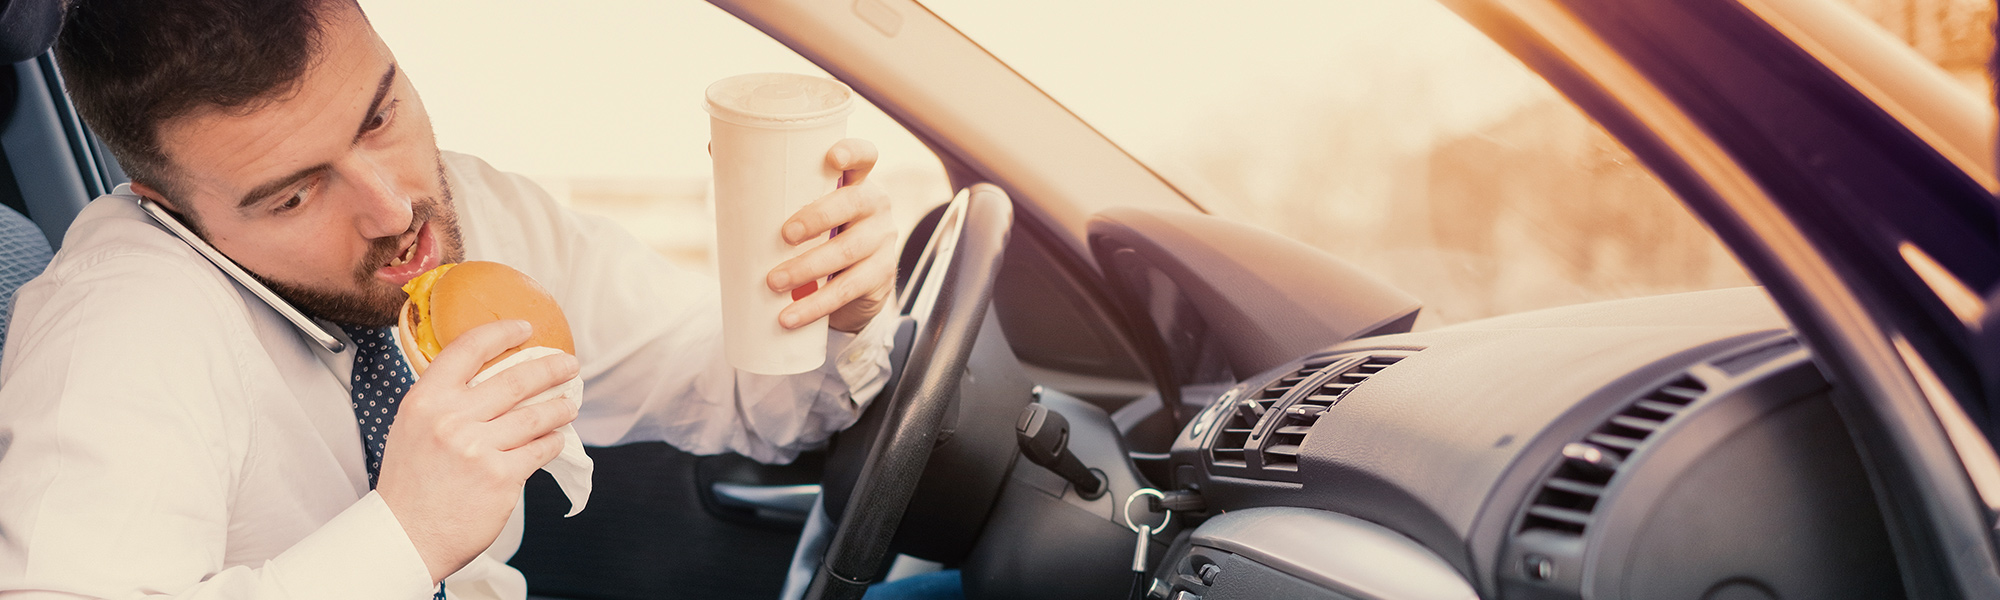 how to stop distracted driving, distracted driving